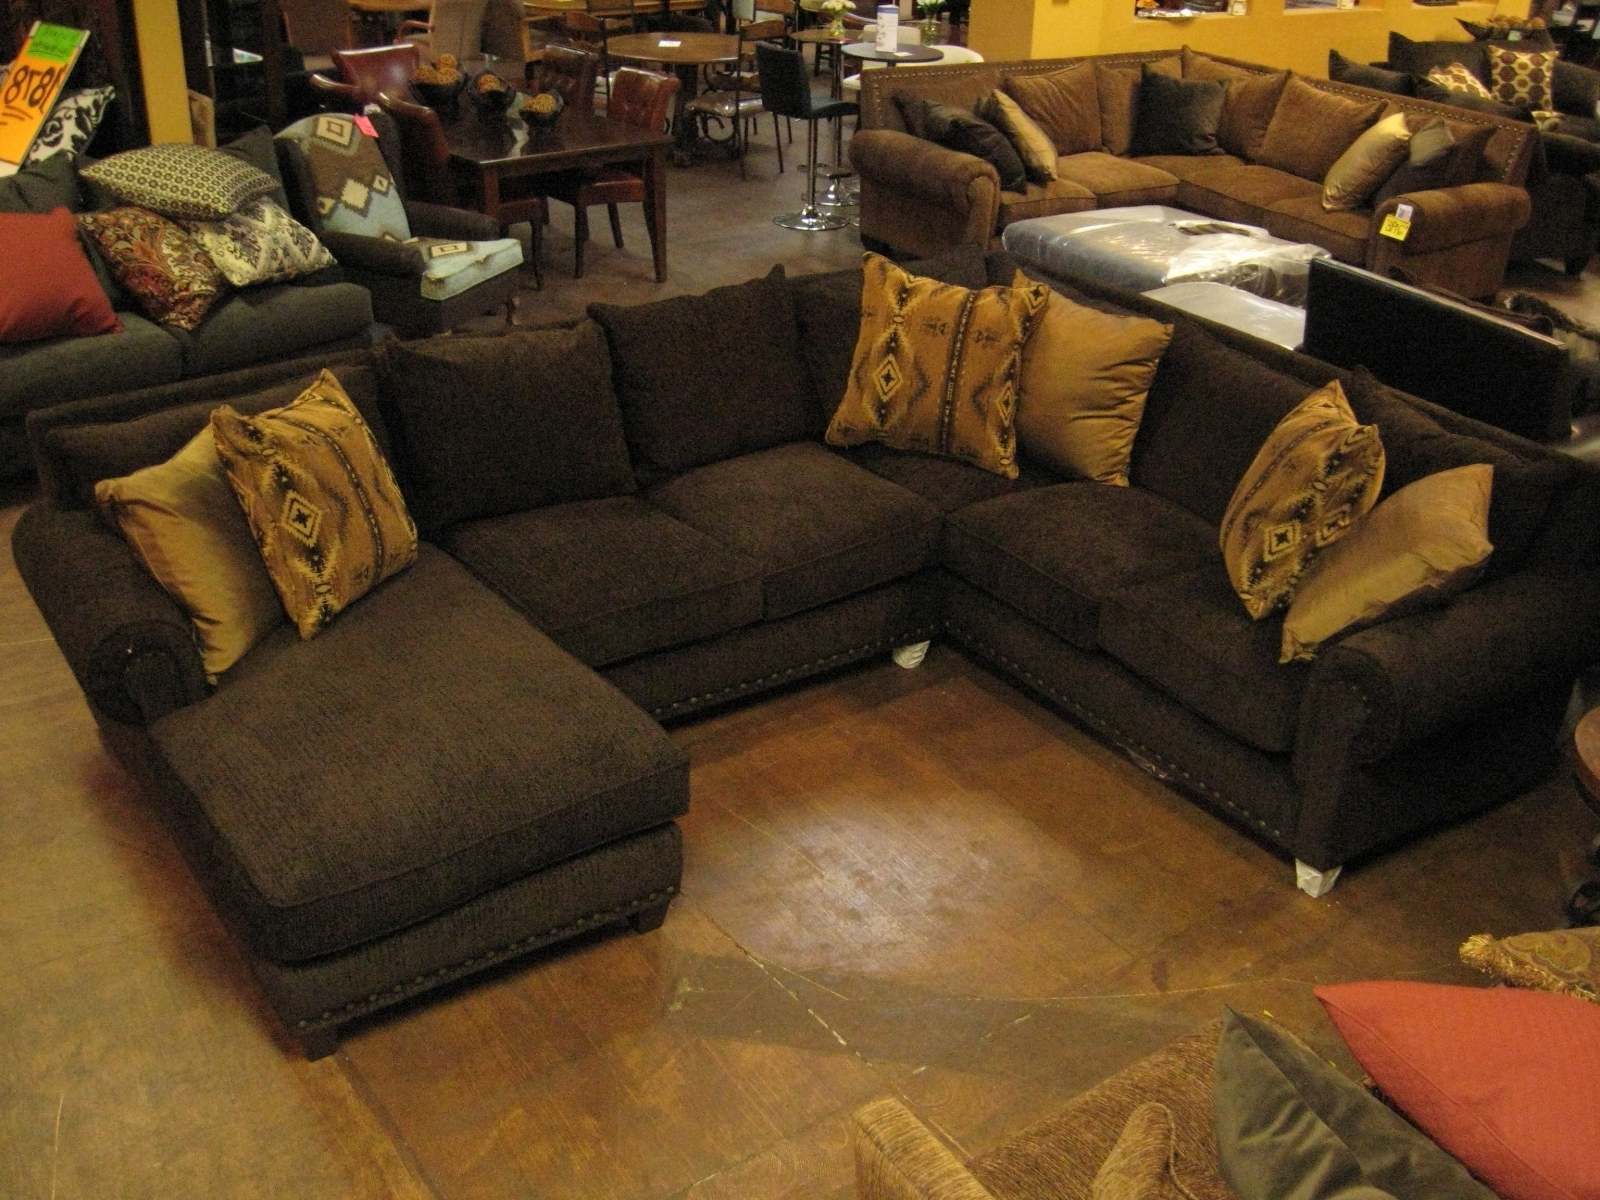 Awesome Deep Couches Design — Cabinets, Beds, Sofas And Pertaining To Current Wide Seat Sectional Sofas (View 5 of 15)